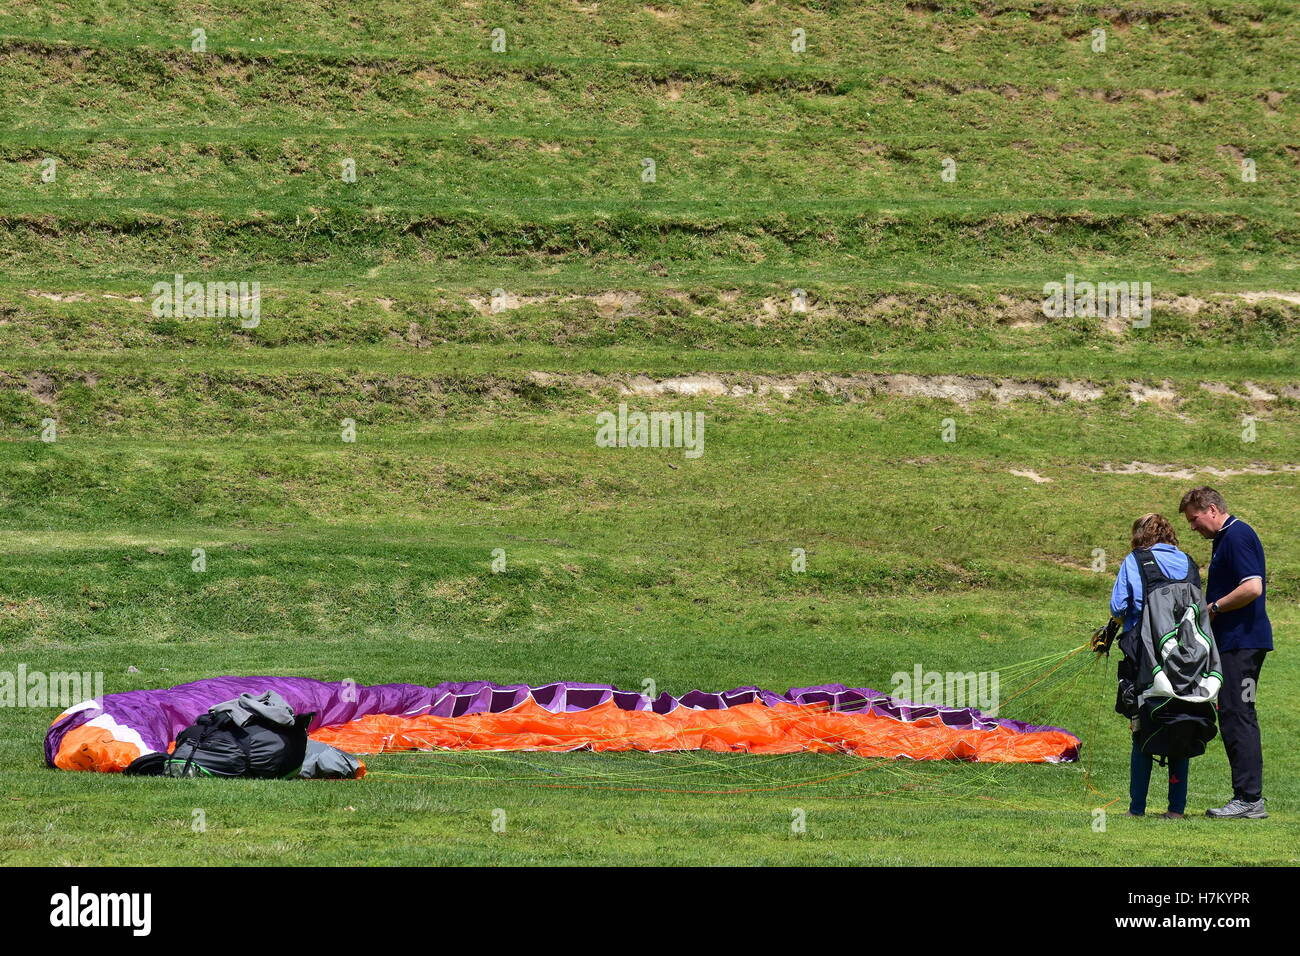 Learning paragliding with a colourful deflated parachute resting on the grass. - Stock Image